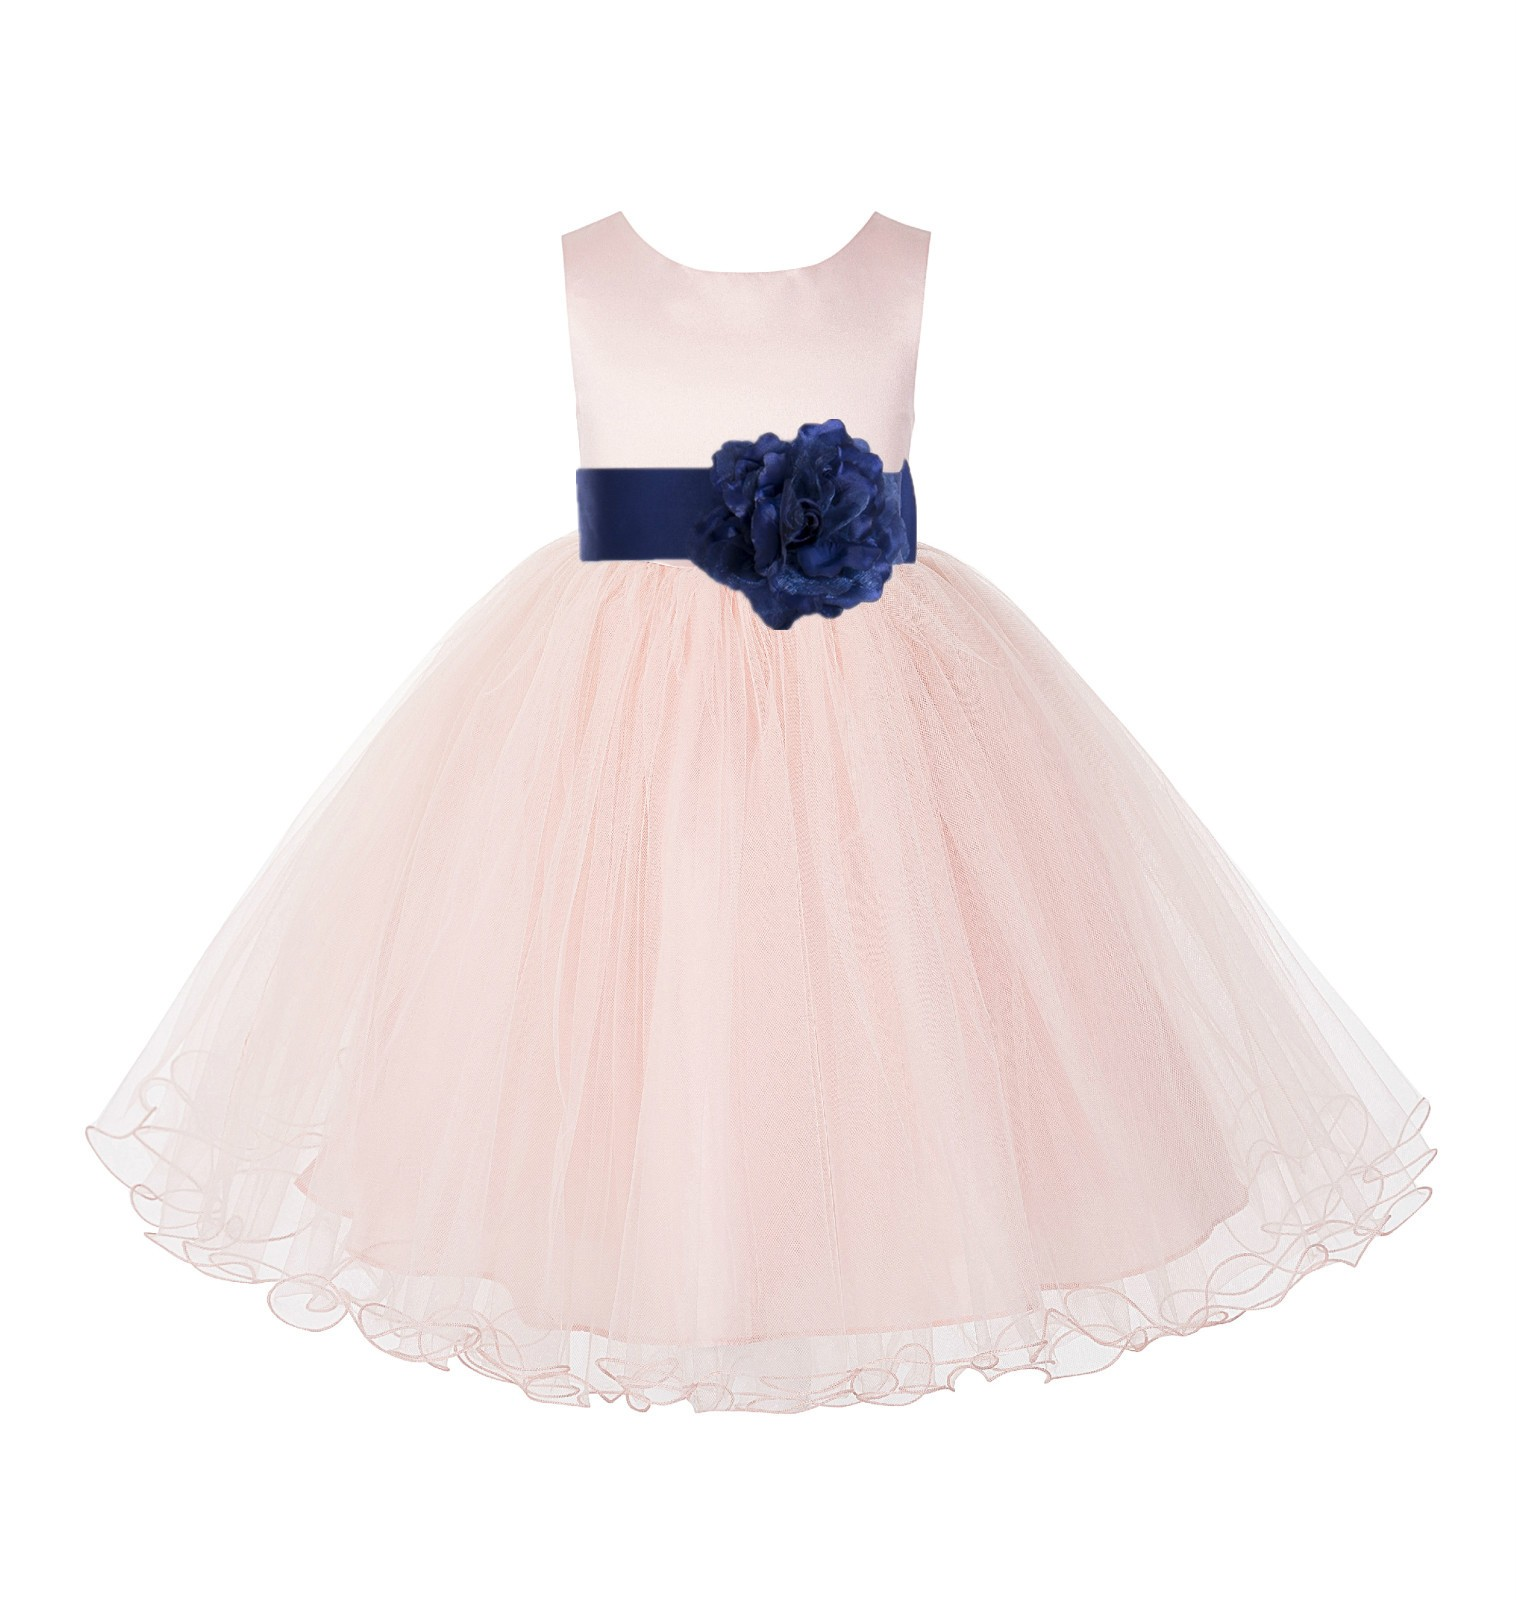 Blush Pink / Navy Tulle Rattail Edge Flower Girl Dress Pageant Recital 829S